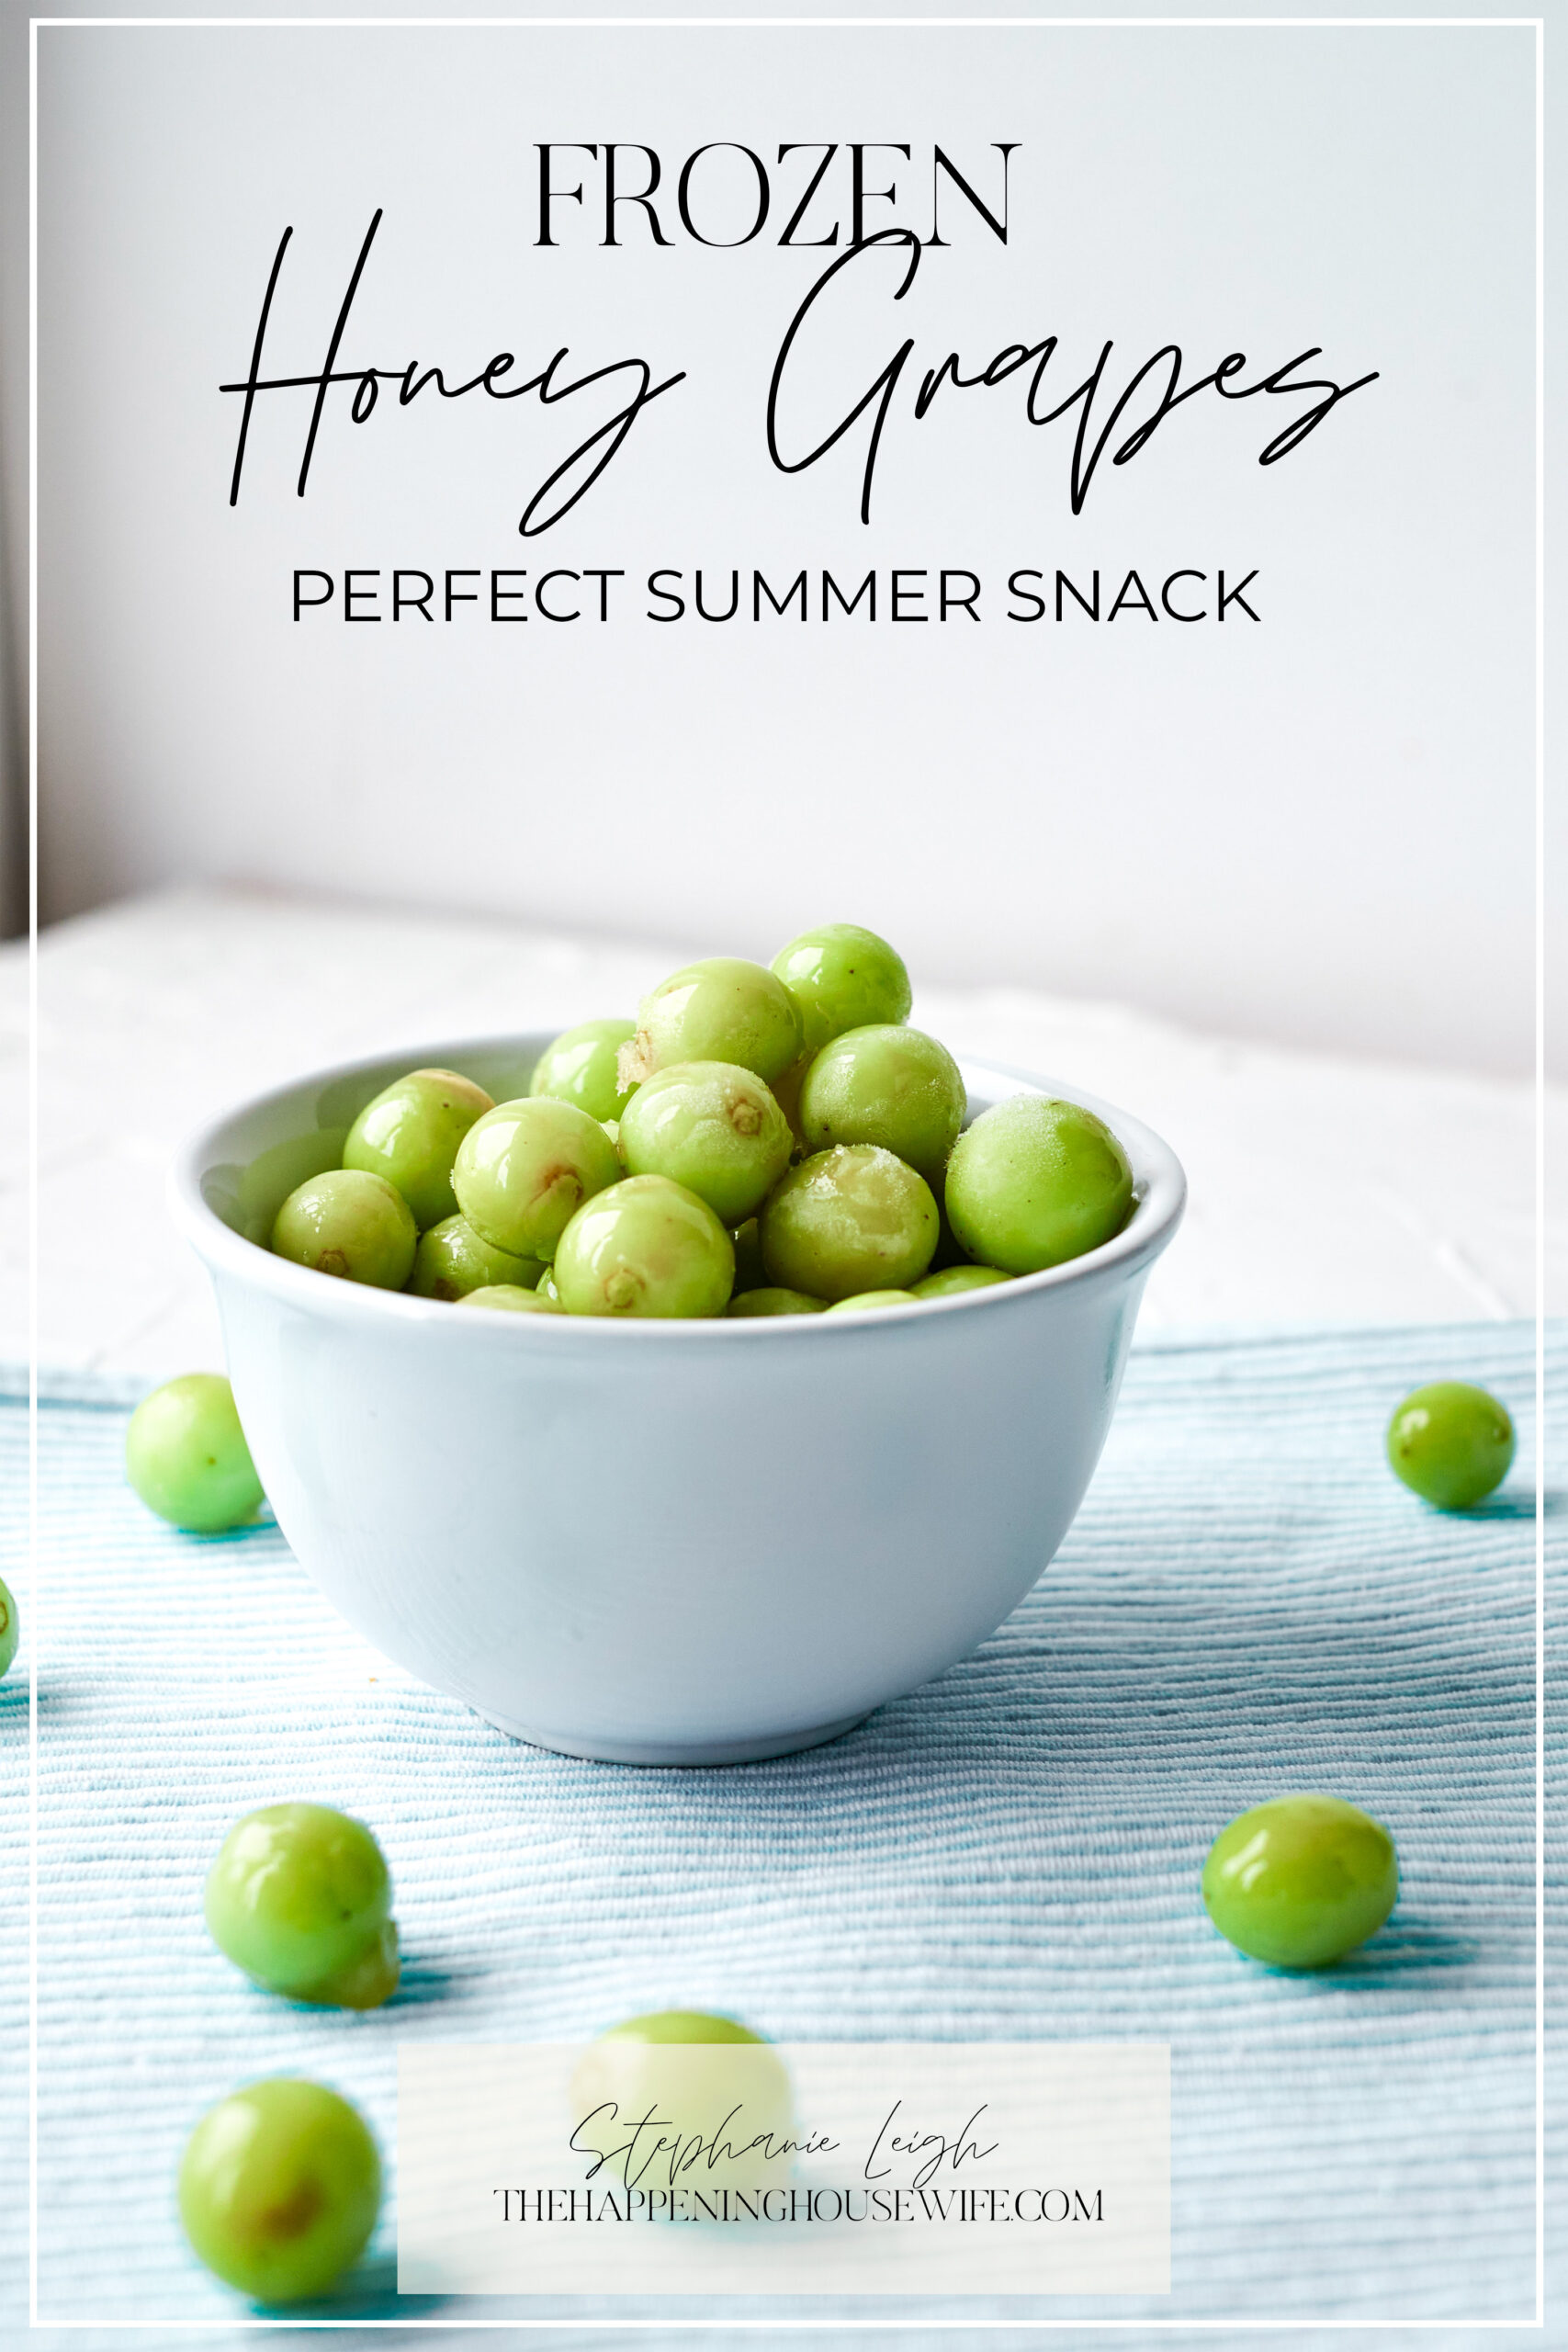 Frozen Honey Grapes!! The PERFECT Summer Snack for the beach, pool, theme park!!